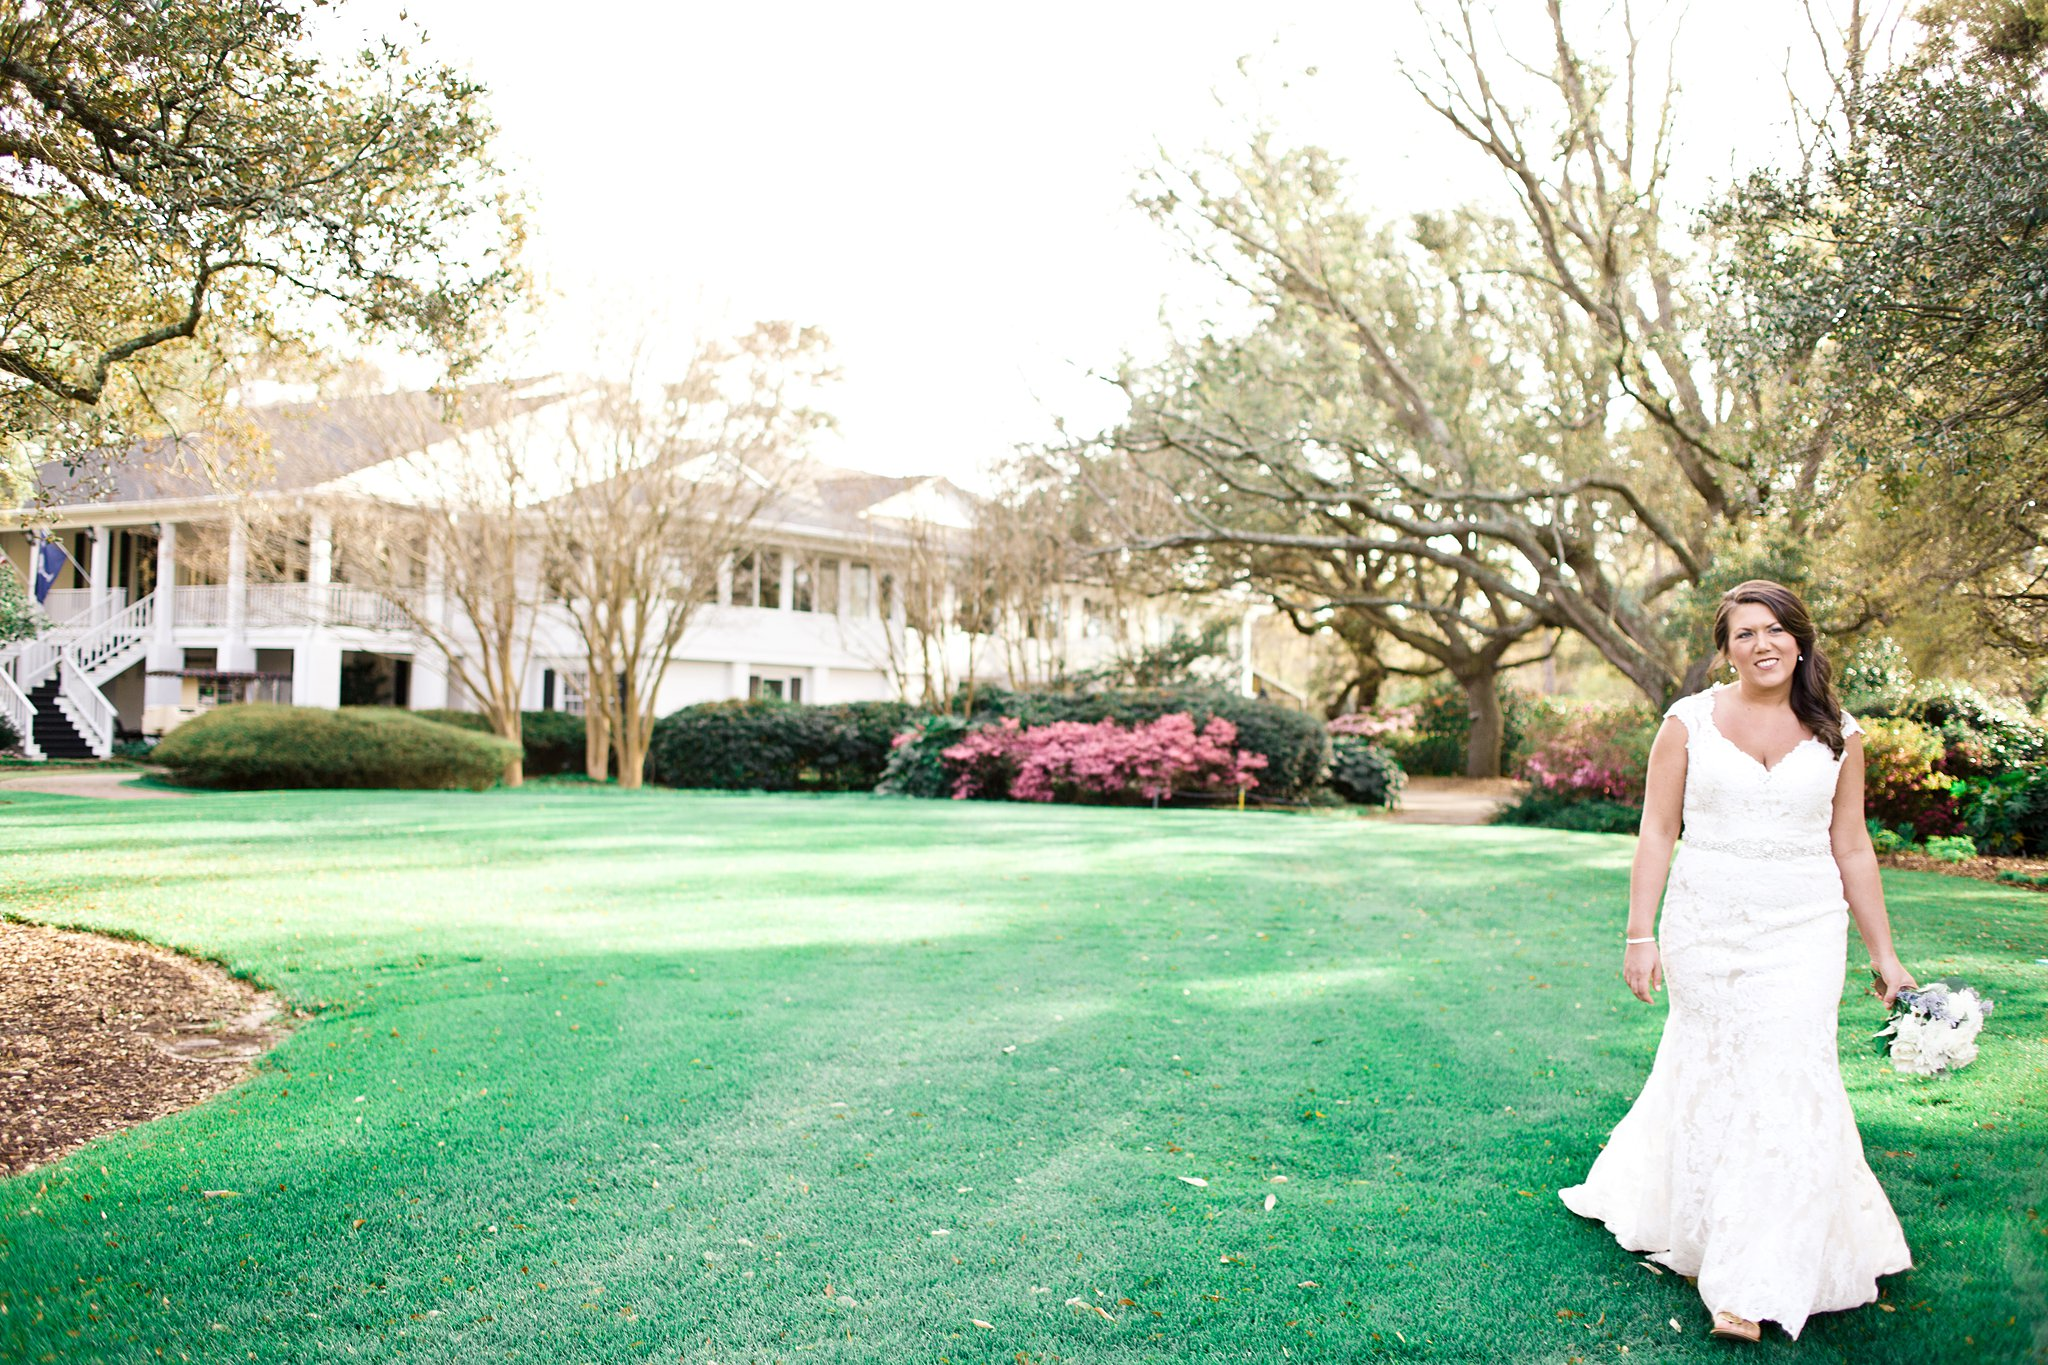 litchfield-golf-country-club-bridal-session-pawleys-island-sc-photos_0103.jpg